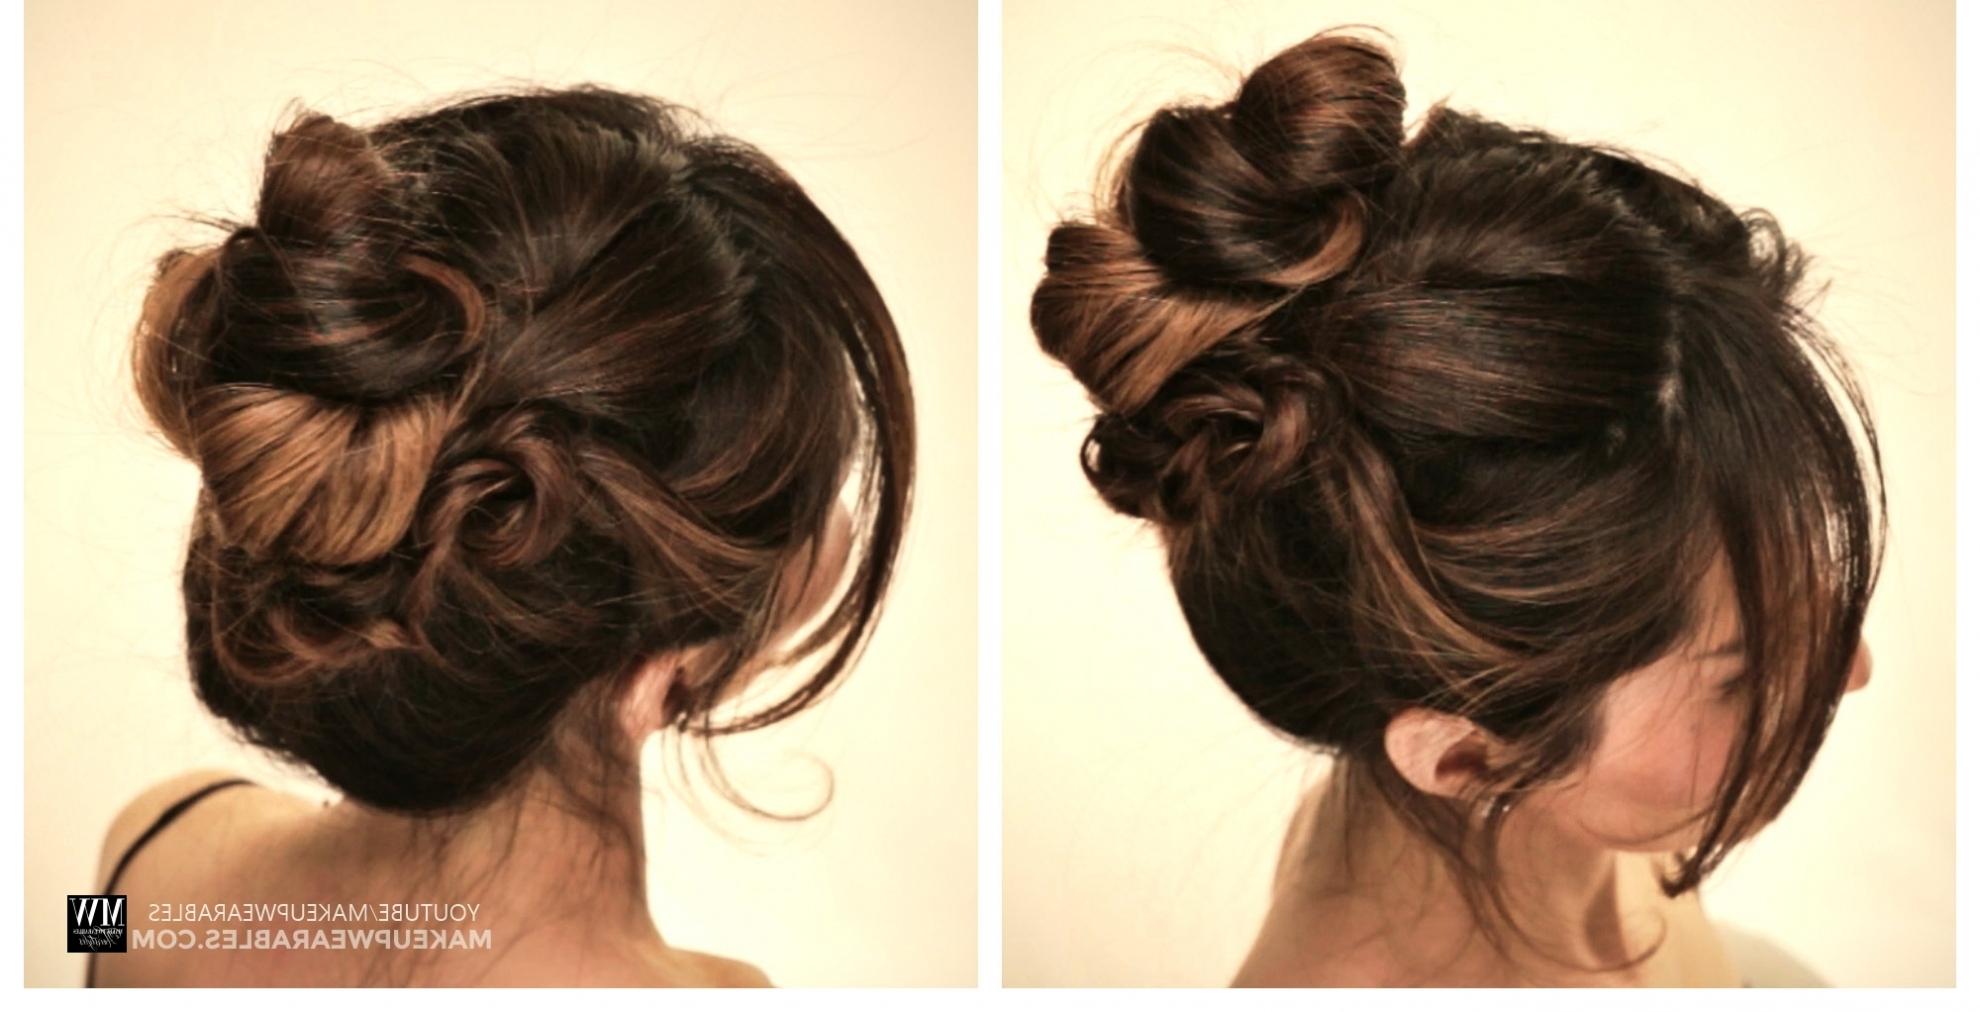 Hairstyles ~ How To: 5 Amazingly Cute Easy Hairstyles With A Simple Within Cute Easy Updos For Long Hair (View 8 of 15)